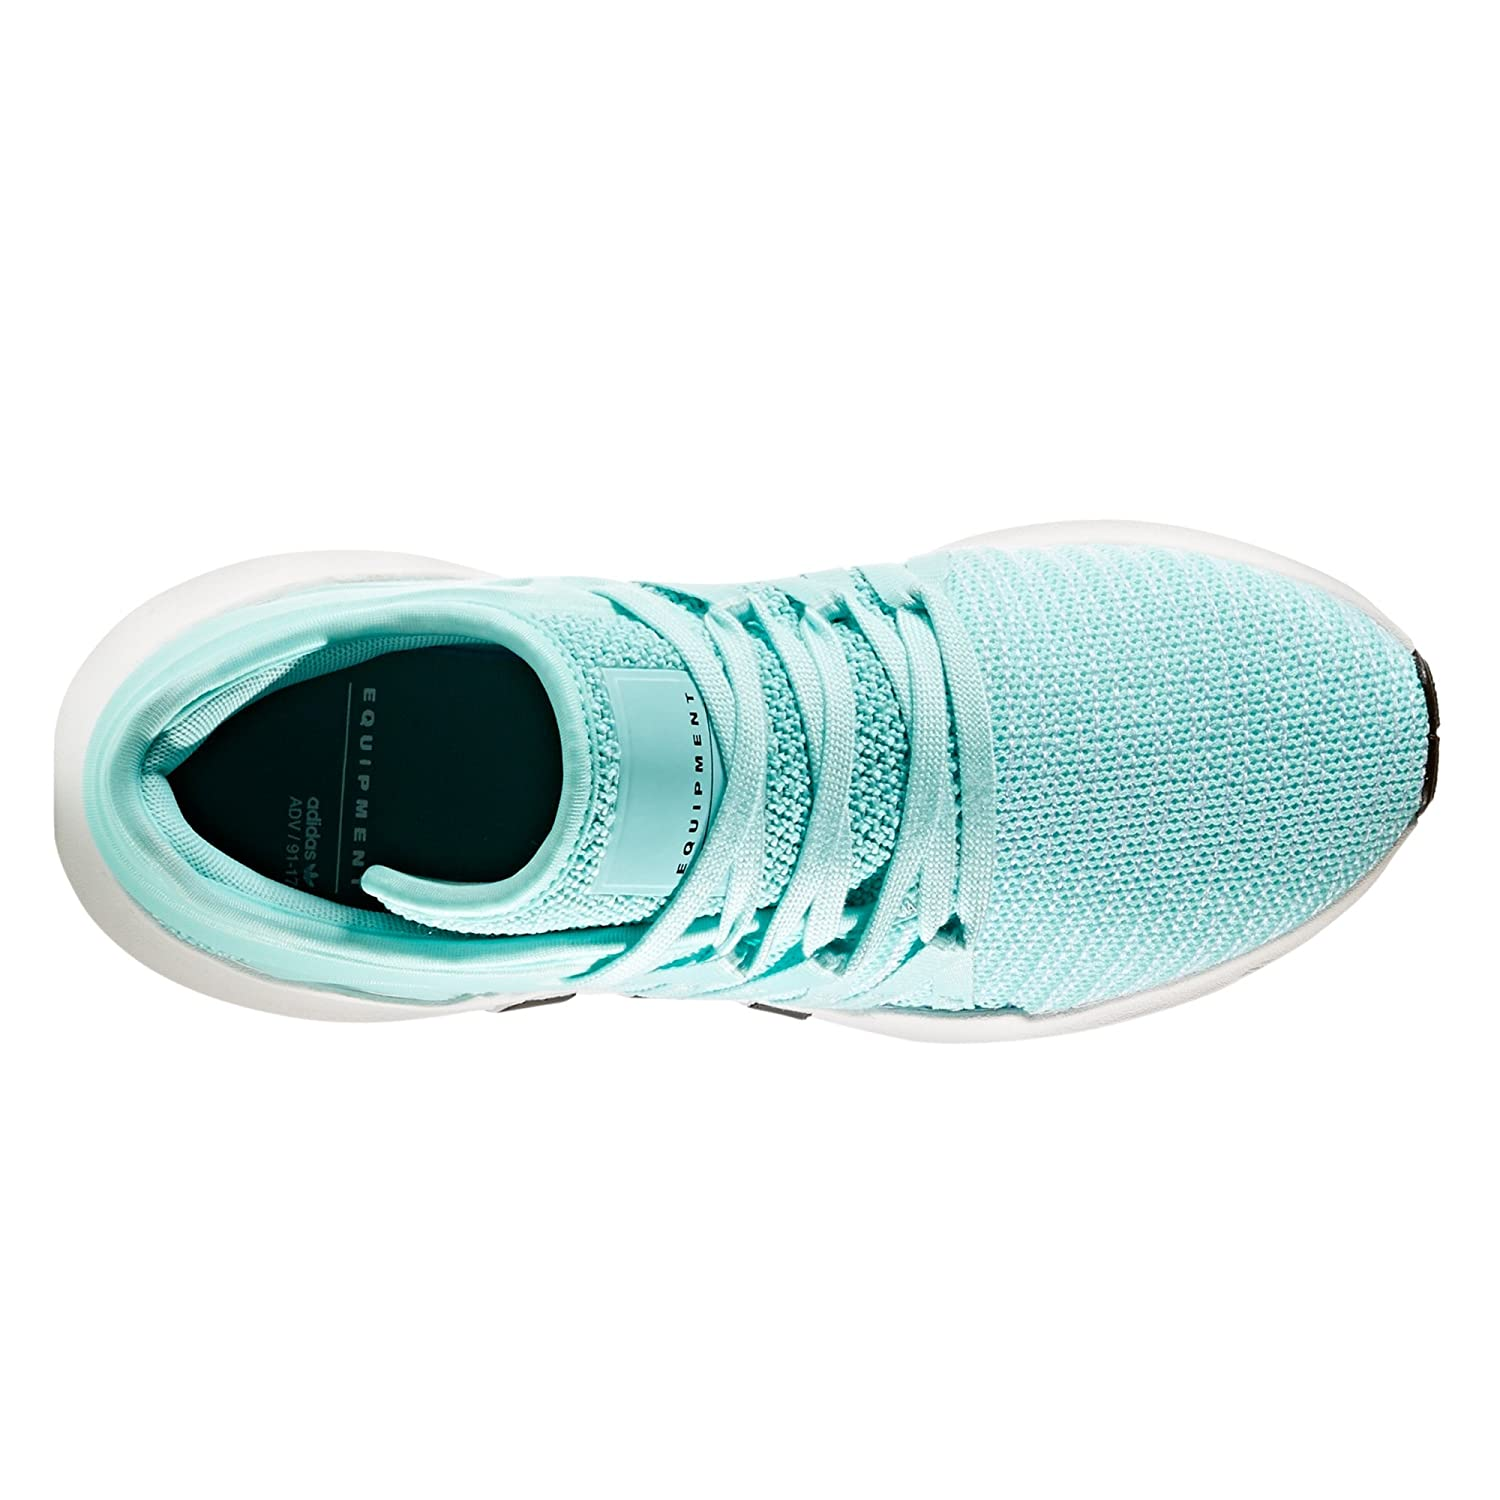 purchase cheap 07b4f fdae4 Adidas EQT Racing ADV W BZ0000, Zapatillas de Deporte para Mujer (37 EU,  Aqua Energy) Amazon.es Zapatos y complementos